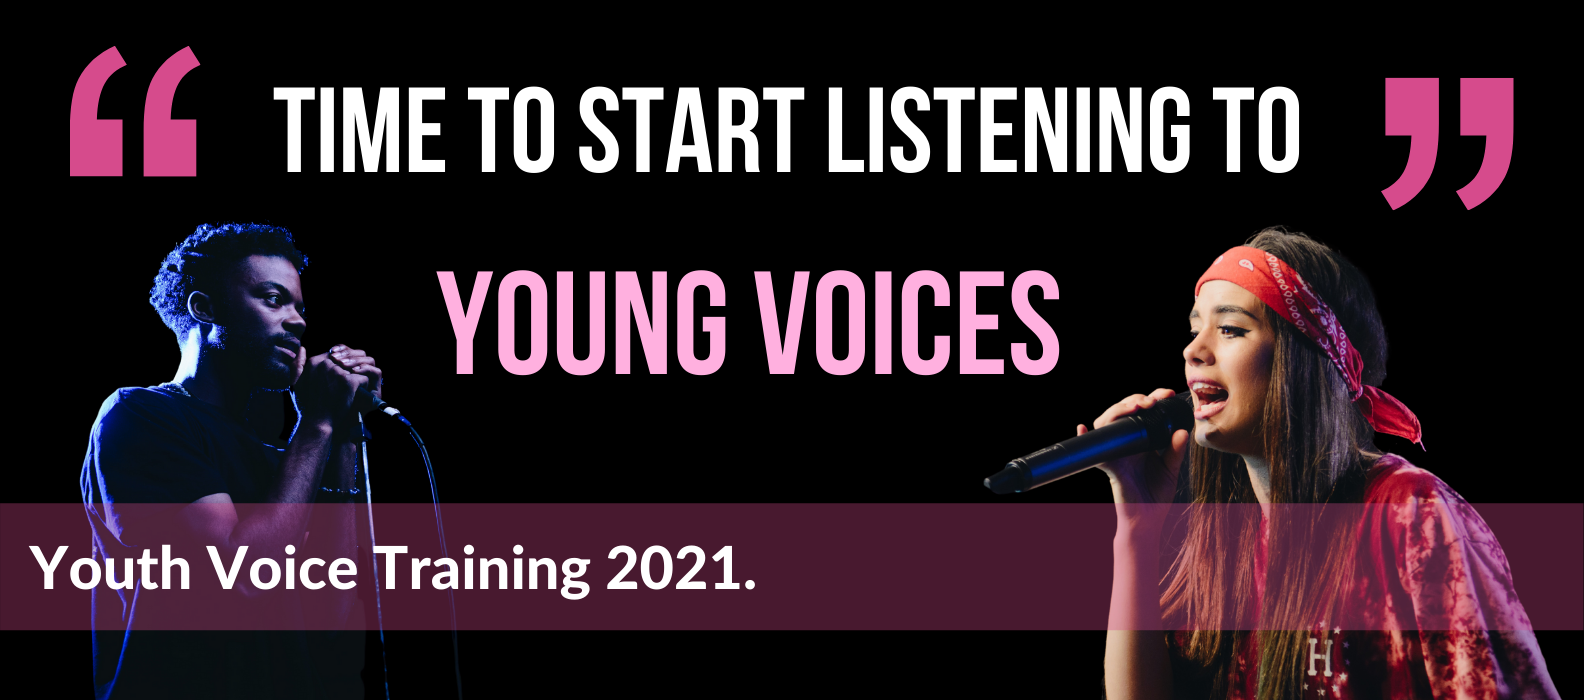 Youth Voice Training April 2021